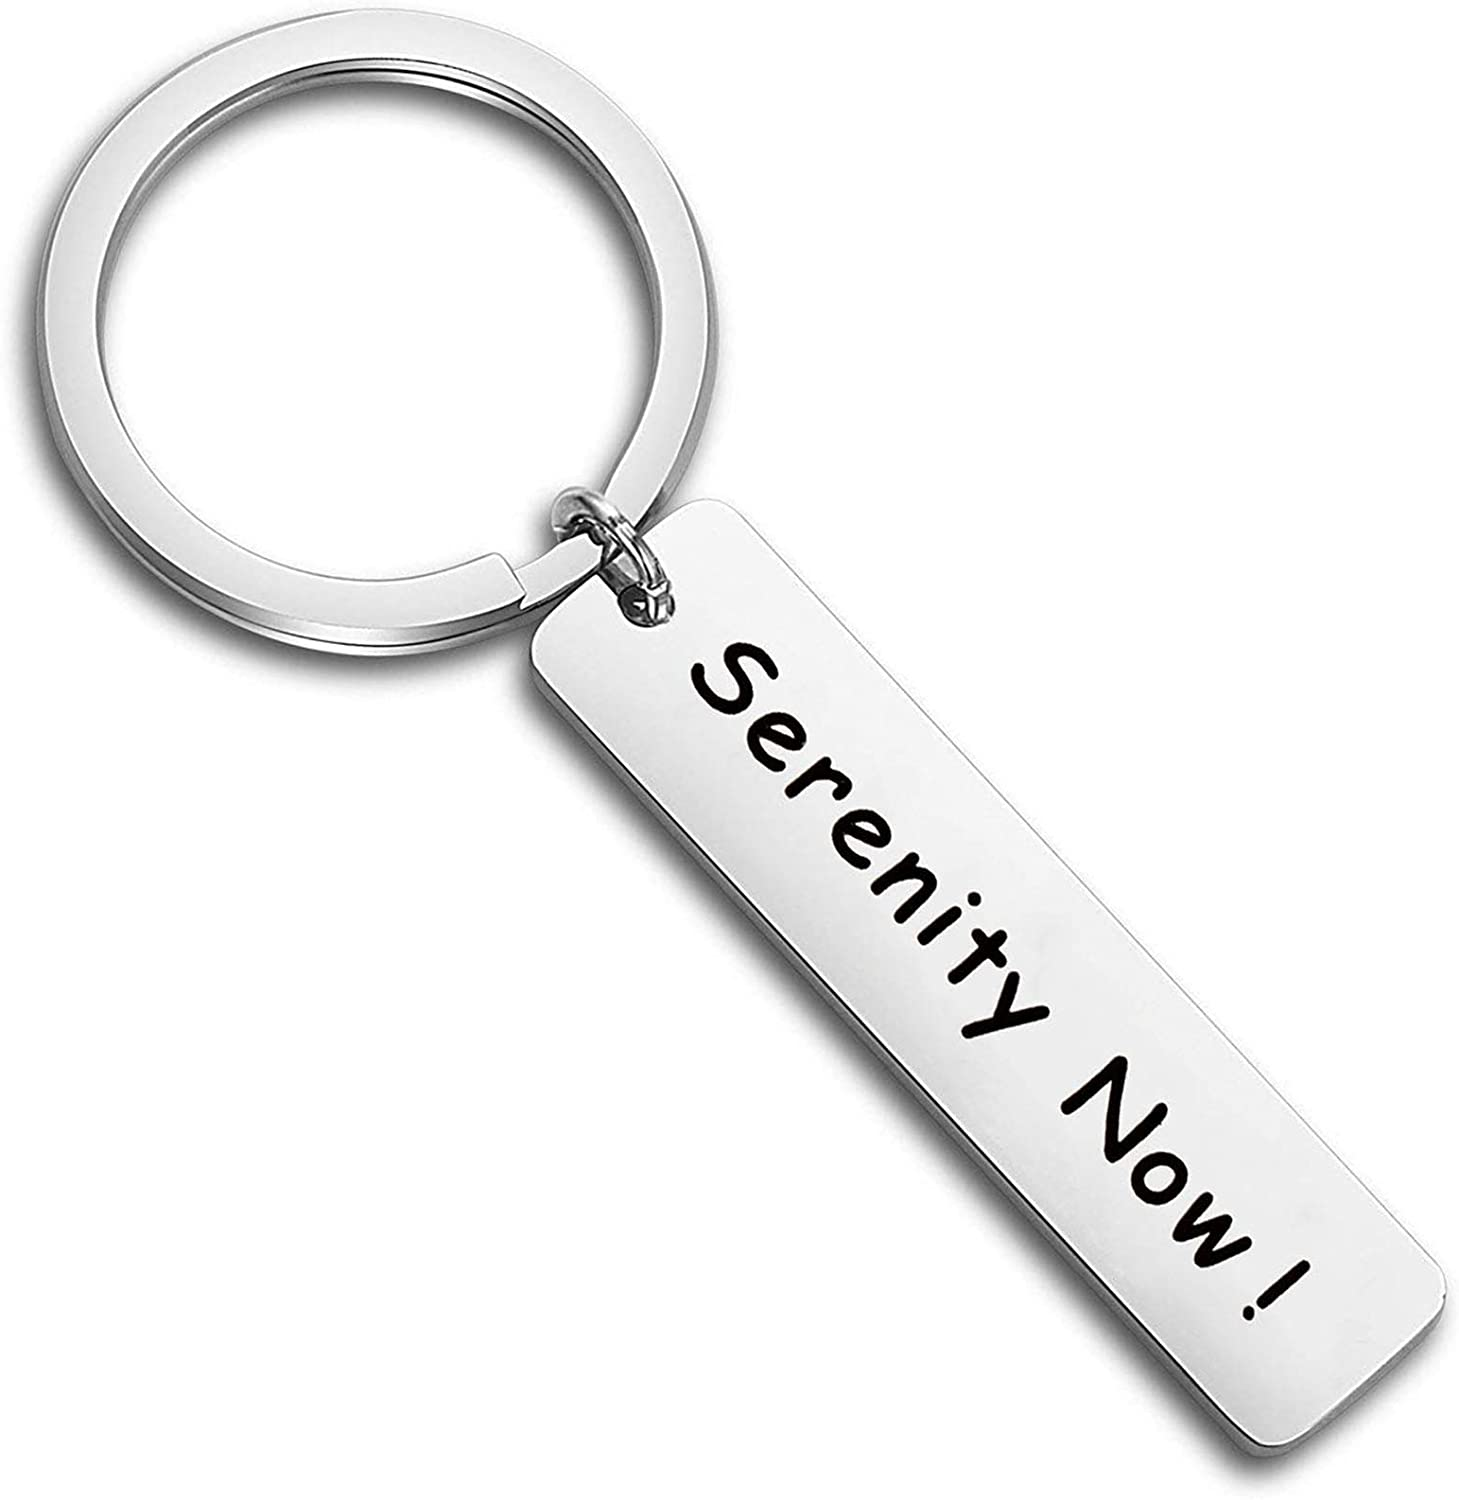 FEELMEM Relaxing Handstamped Key Chain Serenity Now Keyring Gift for Best Friend Family Jewelry